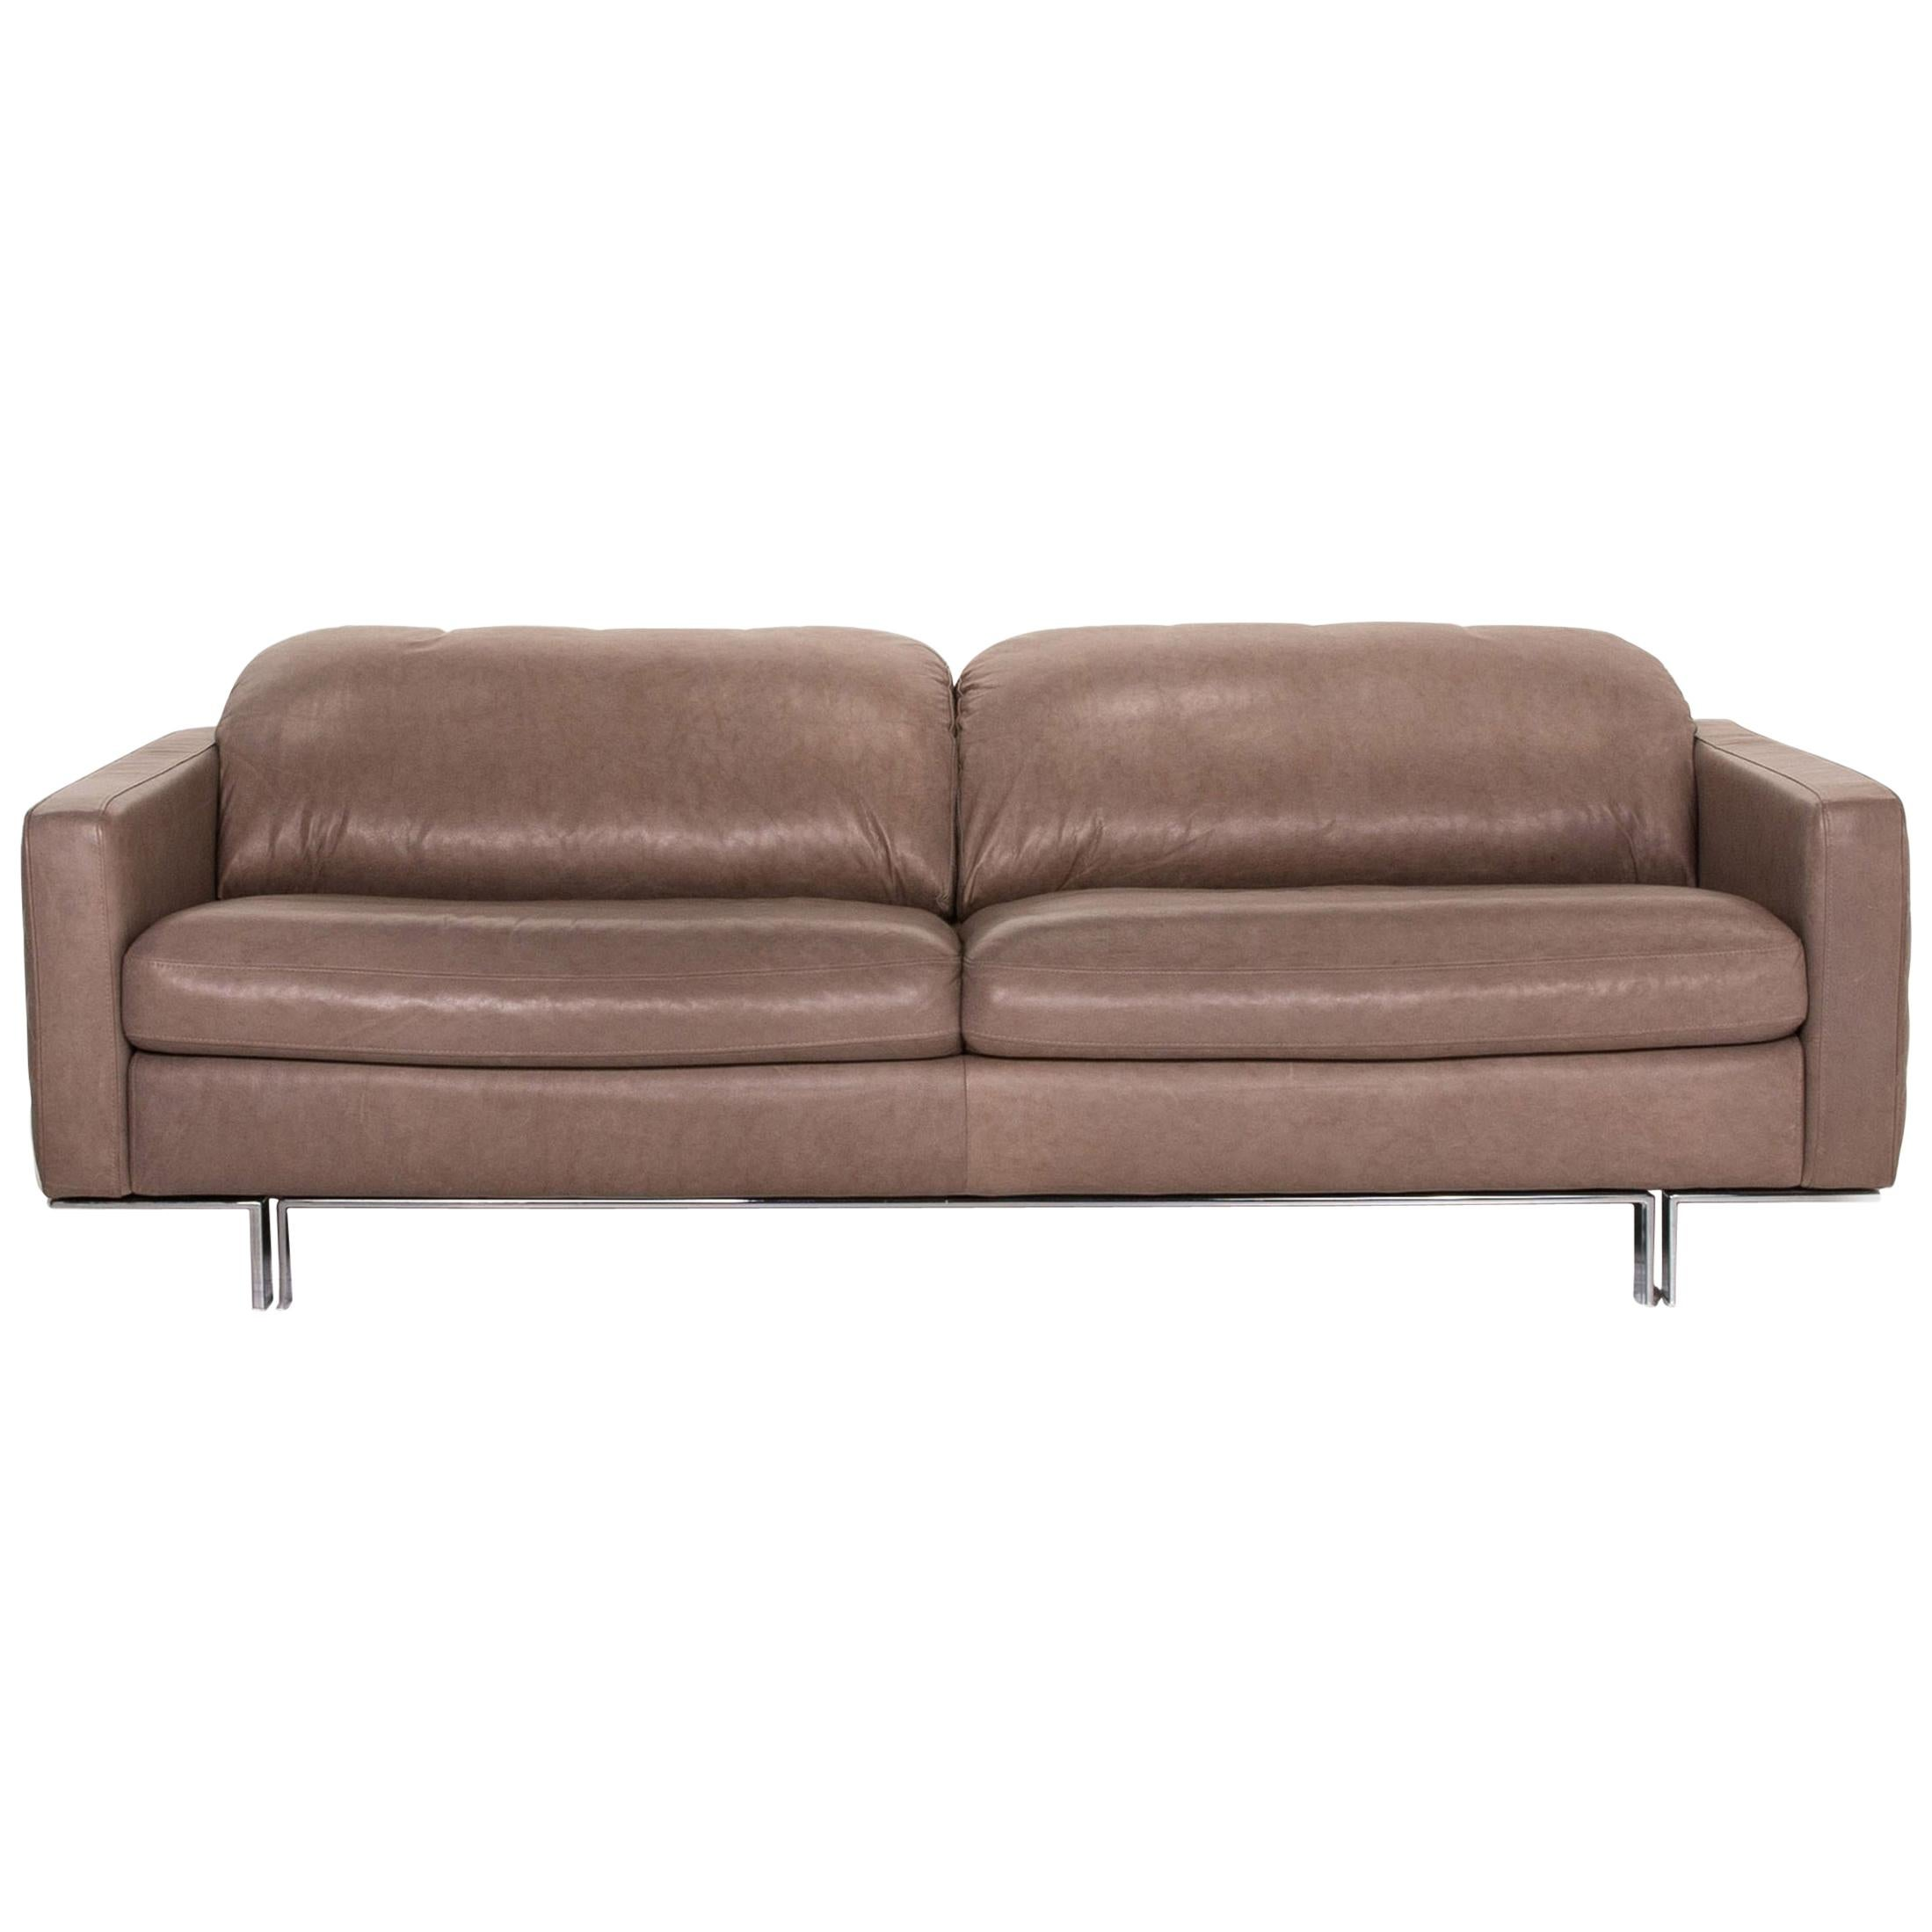 Willi Schillig Leather Sofa Gray Beige Three-Seat Couch